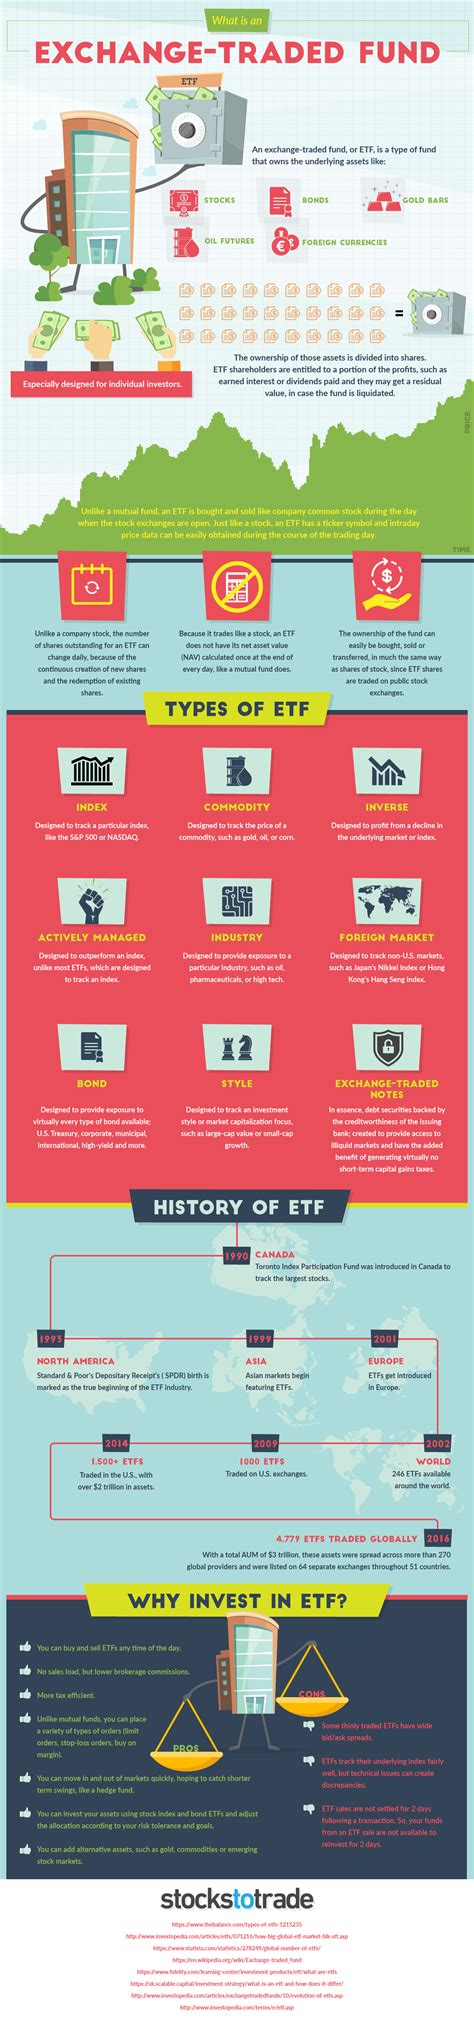 s p index fund etf infographic what is an etf